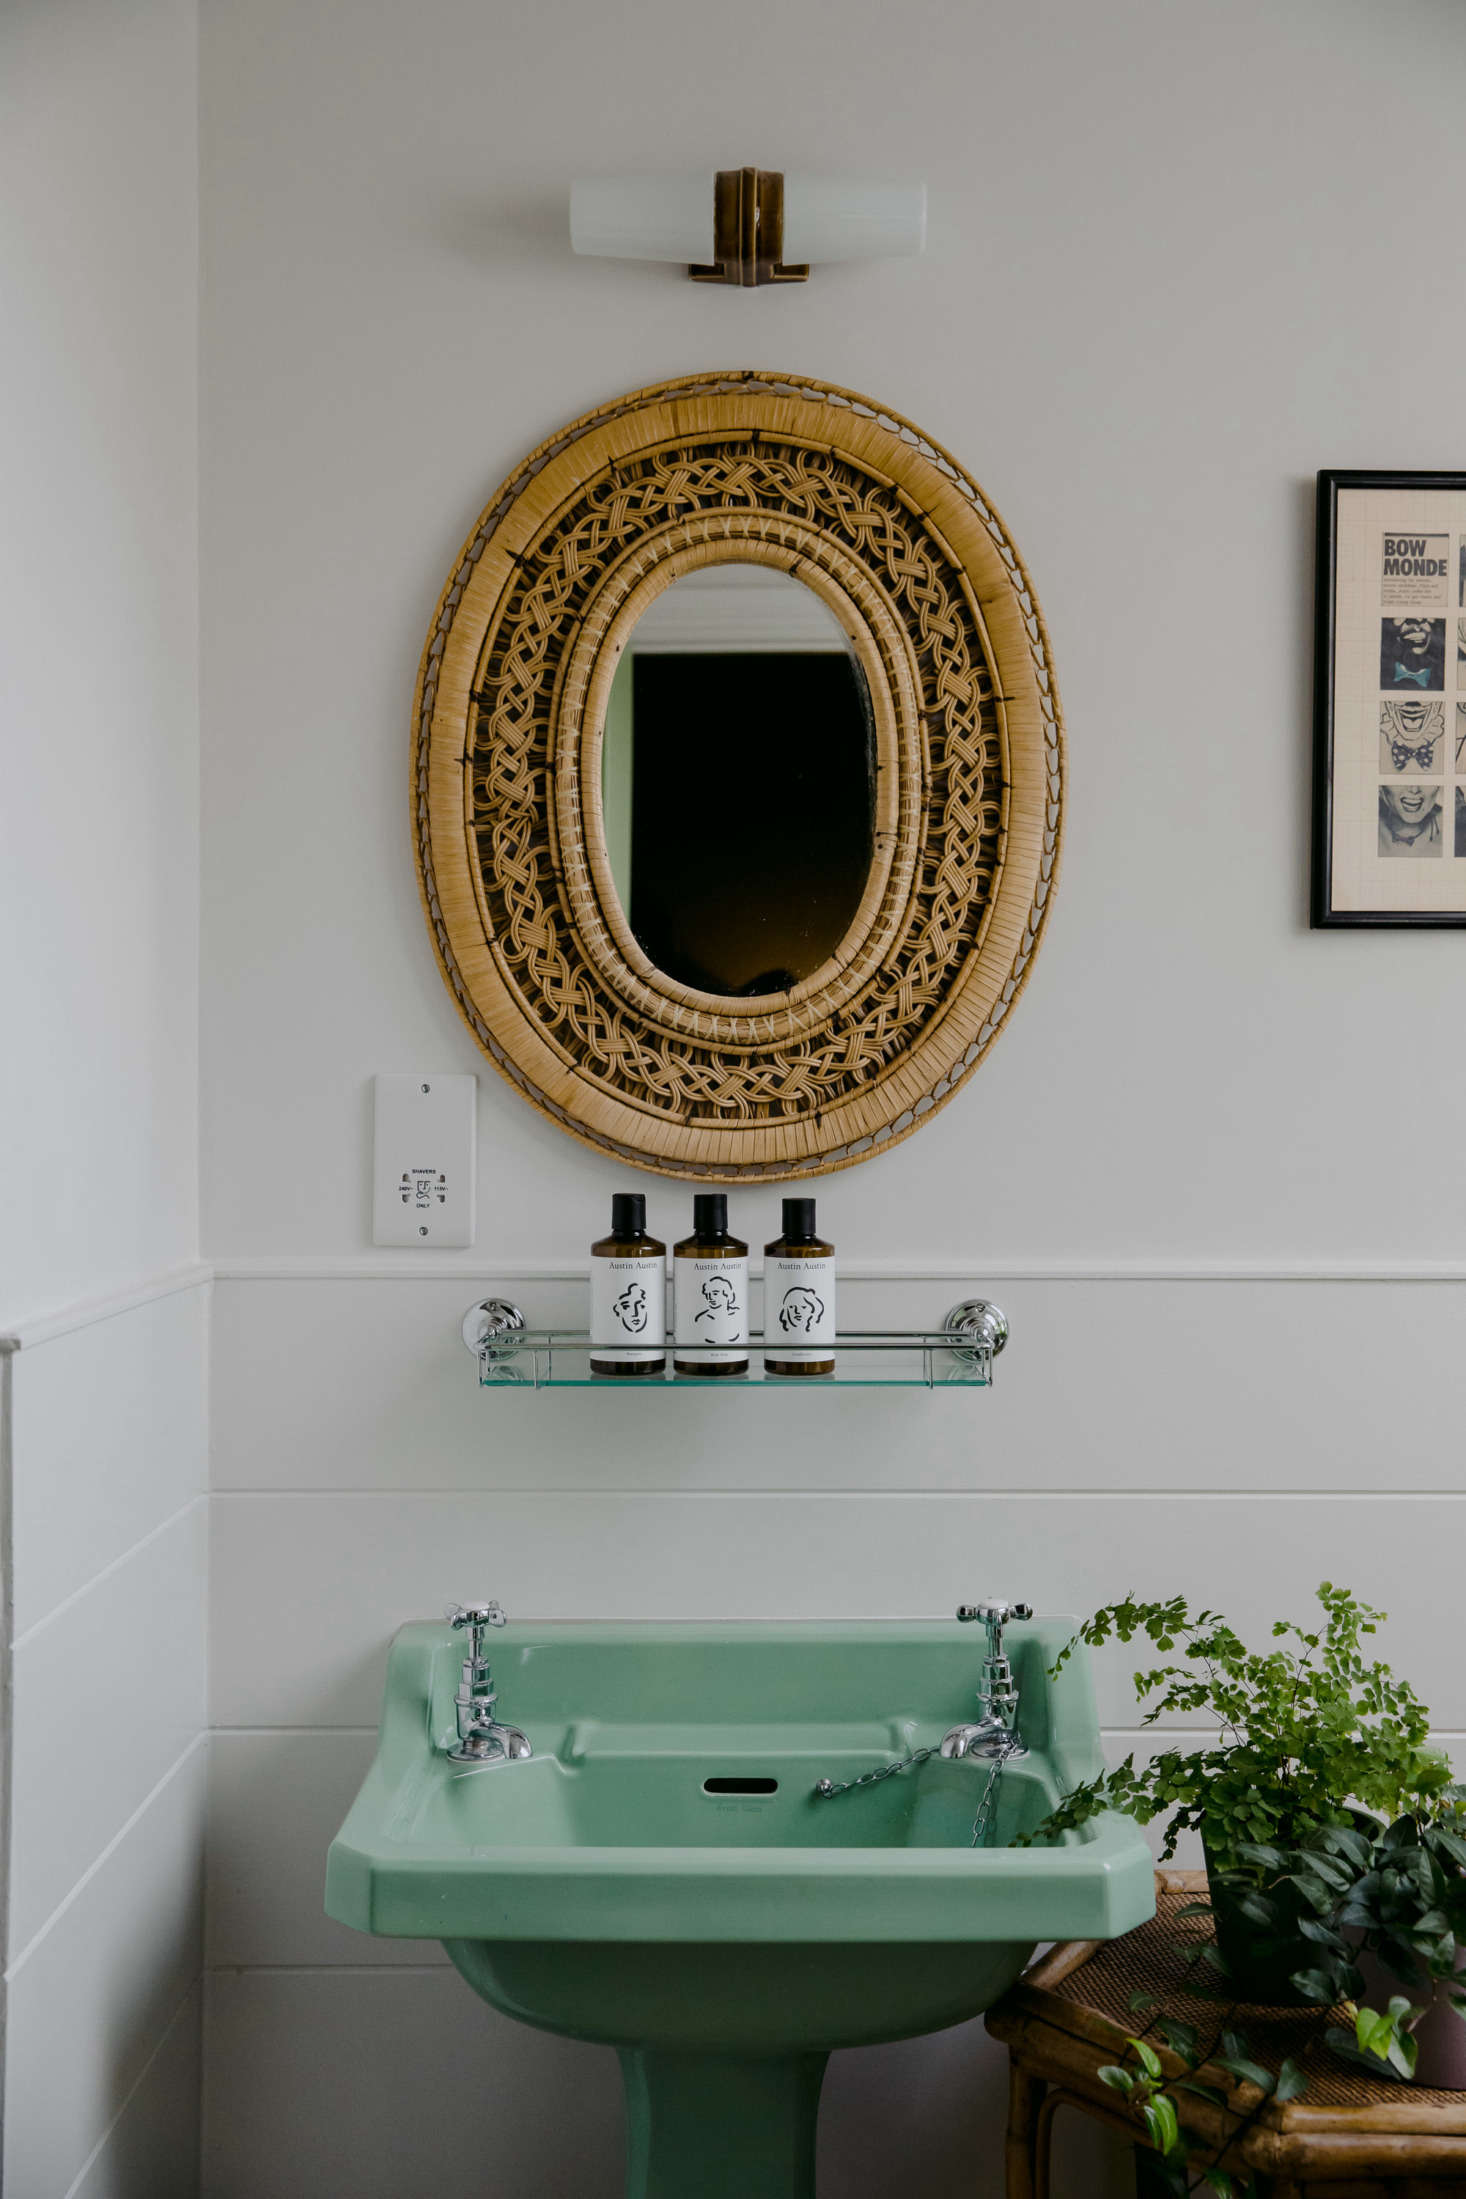 Green is a leitmotif throughout The Rose hotel in England, including in this guest bath, which features a retro mint sink and matching toilet. Photograph by Seth Carnill, from Steal This Look: A Retro Bath on the English Seaside.